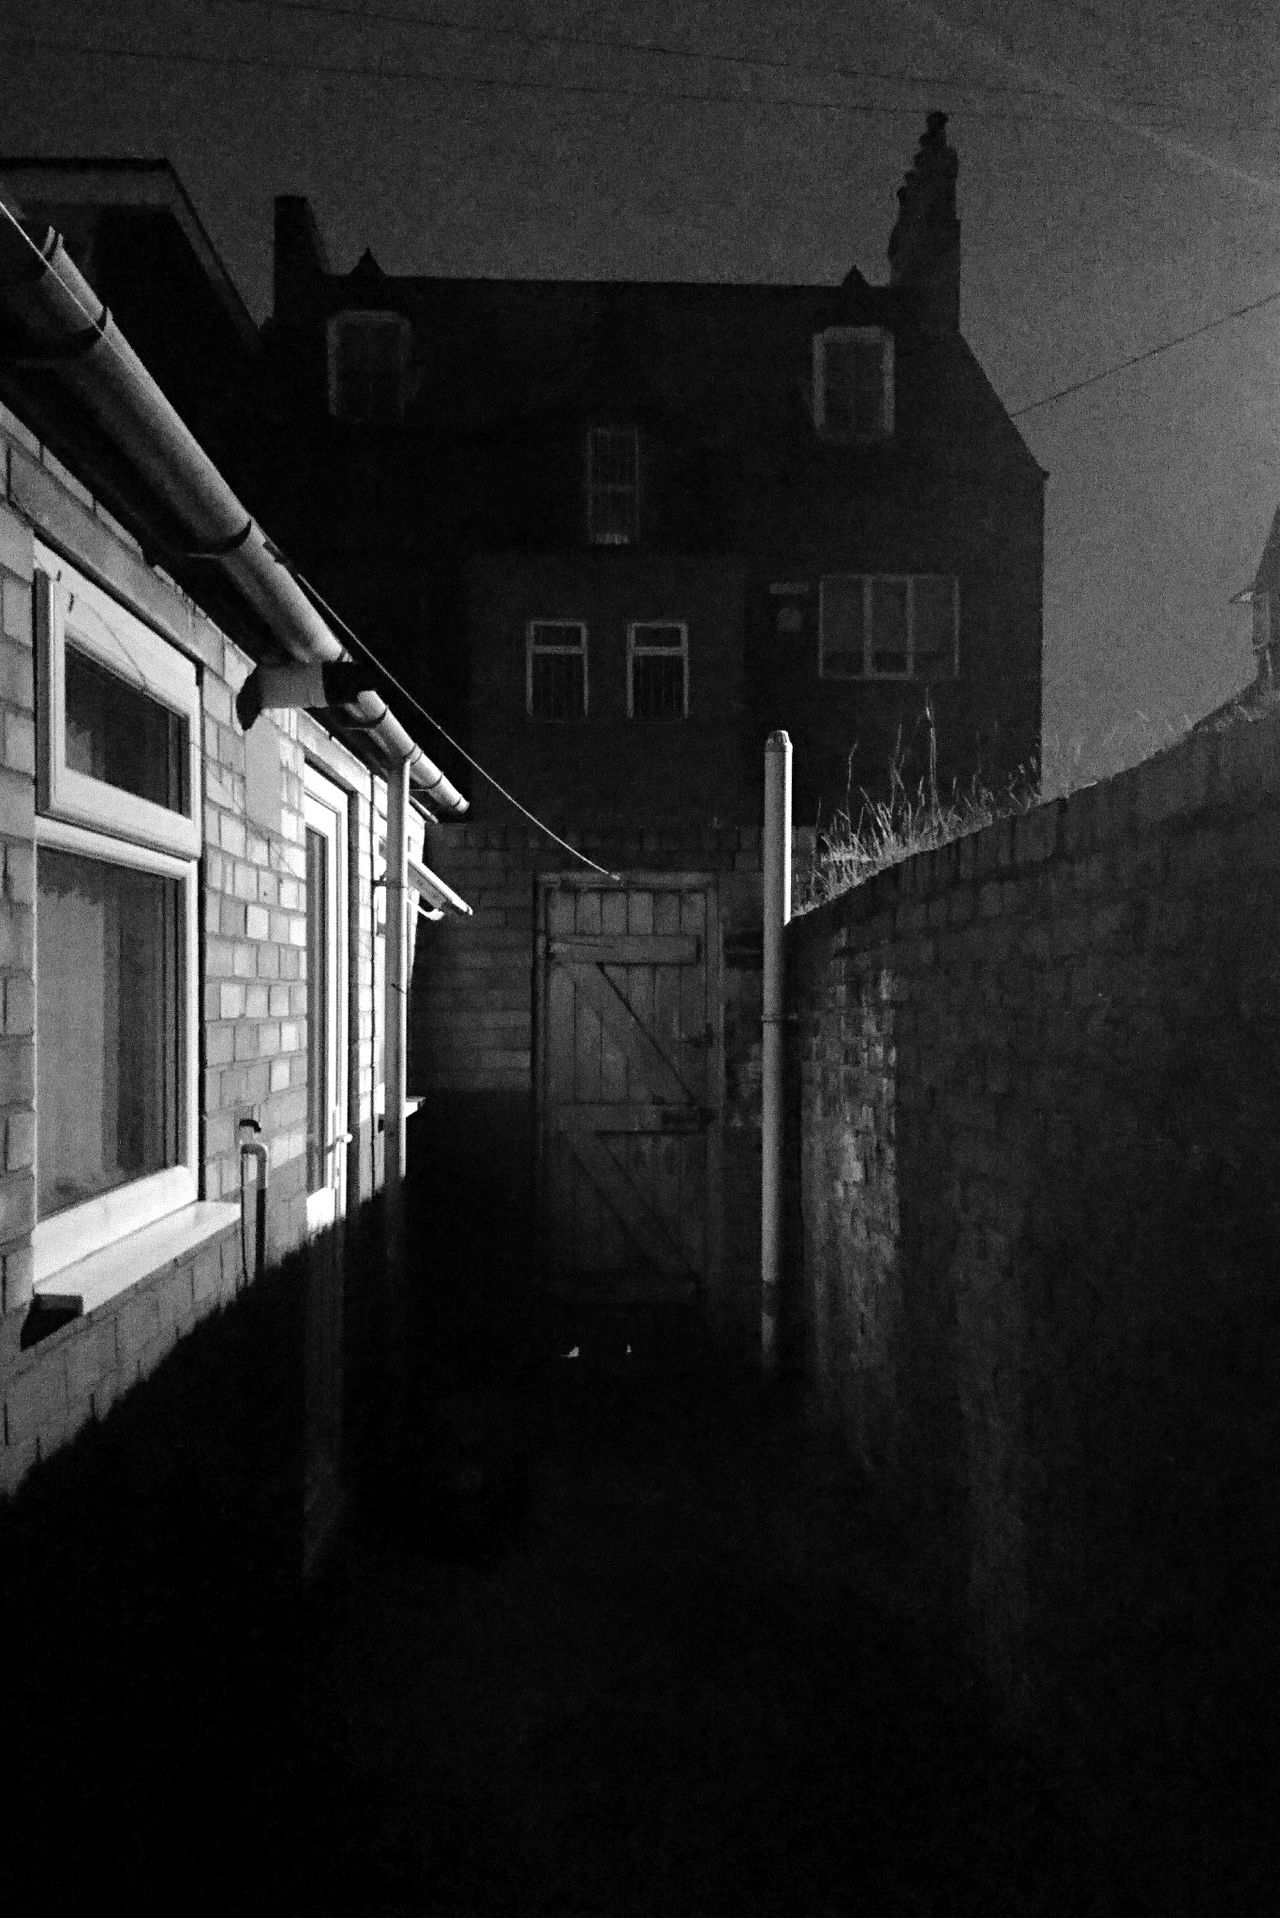 10:07pm Building Exterior Outdoors Architecture Night Moody Urban Shadow Low Angle View The City Light Social Issues Industry Grit Wide Angle Streetlight Streetphoto_bw Blackandwhite